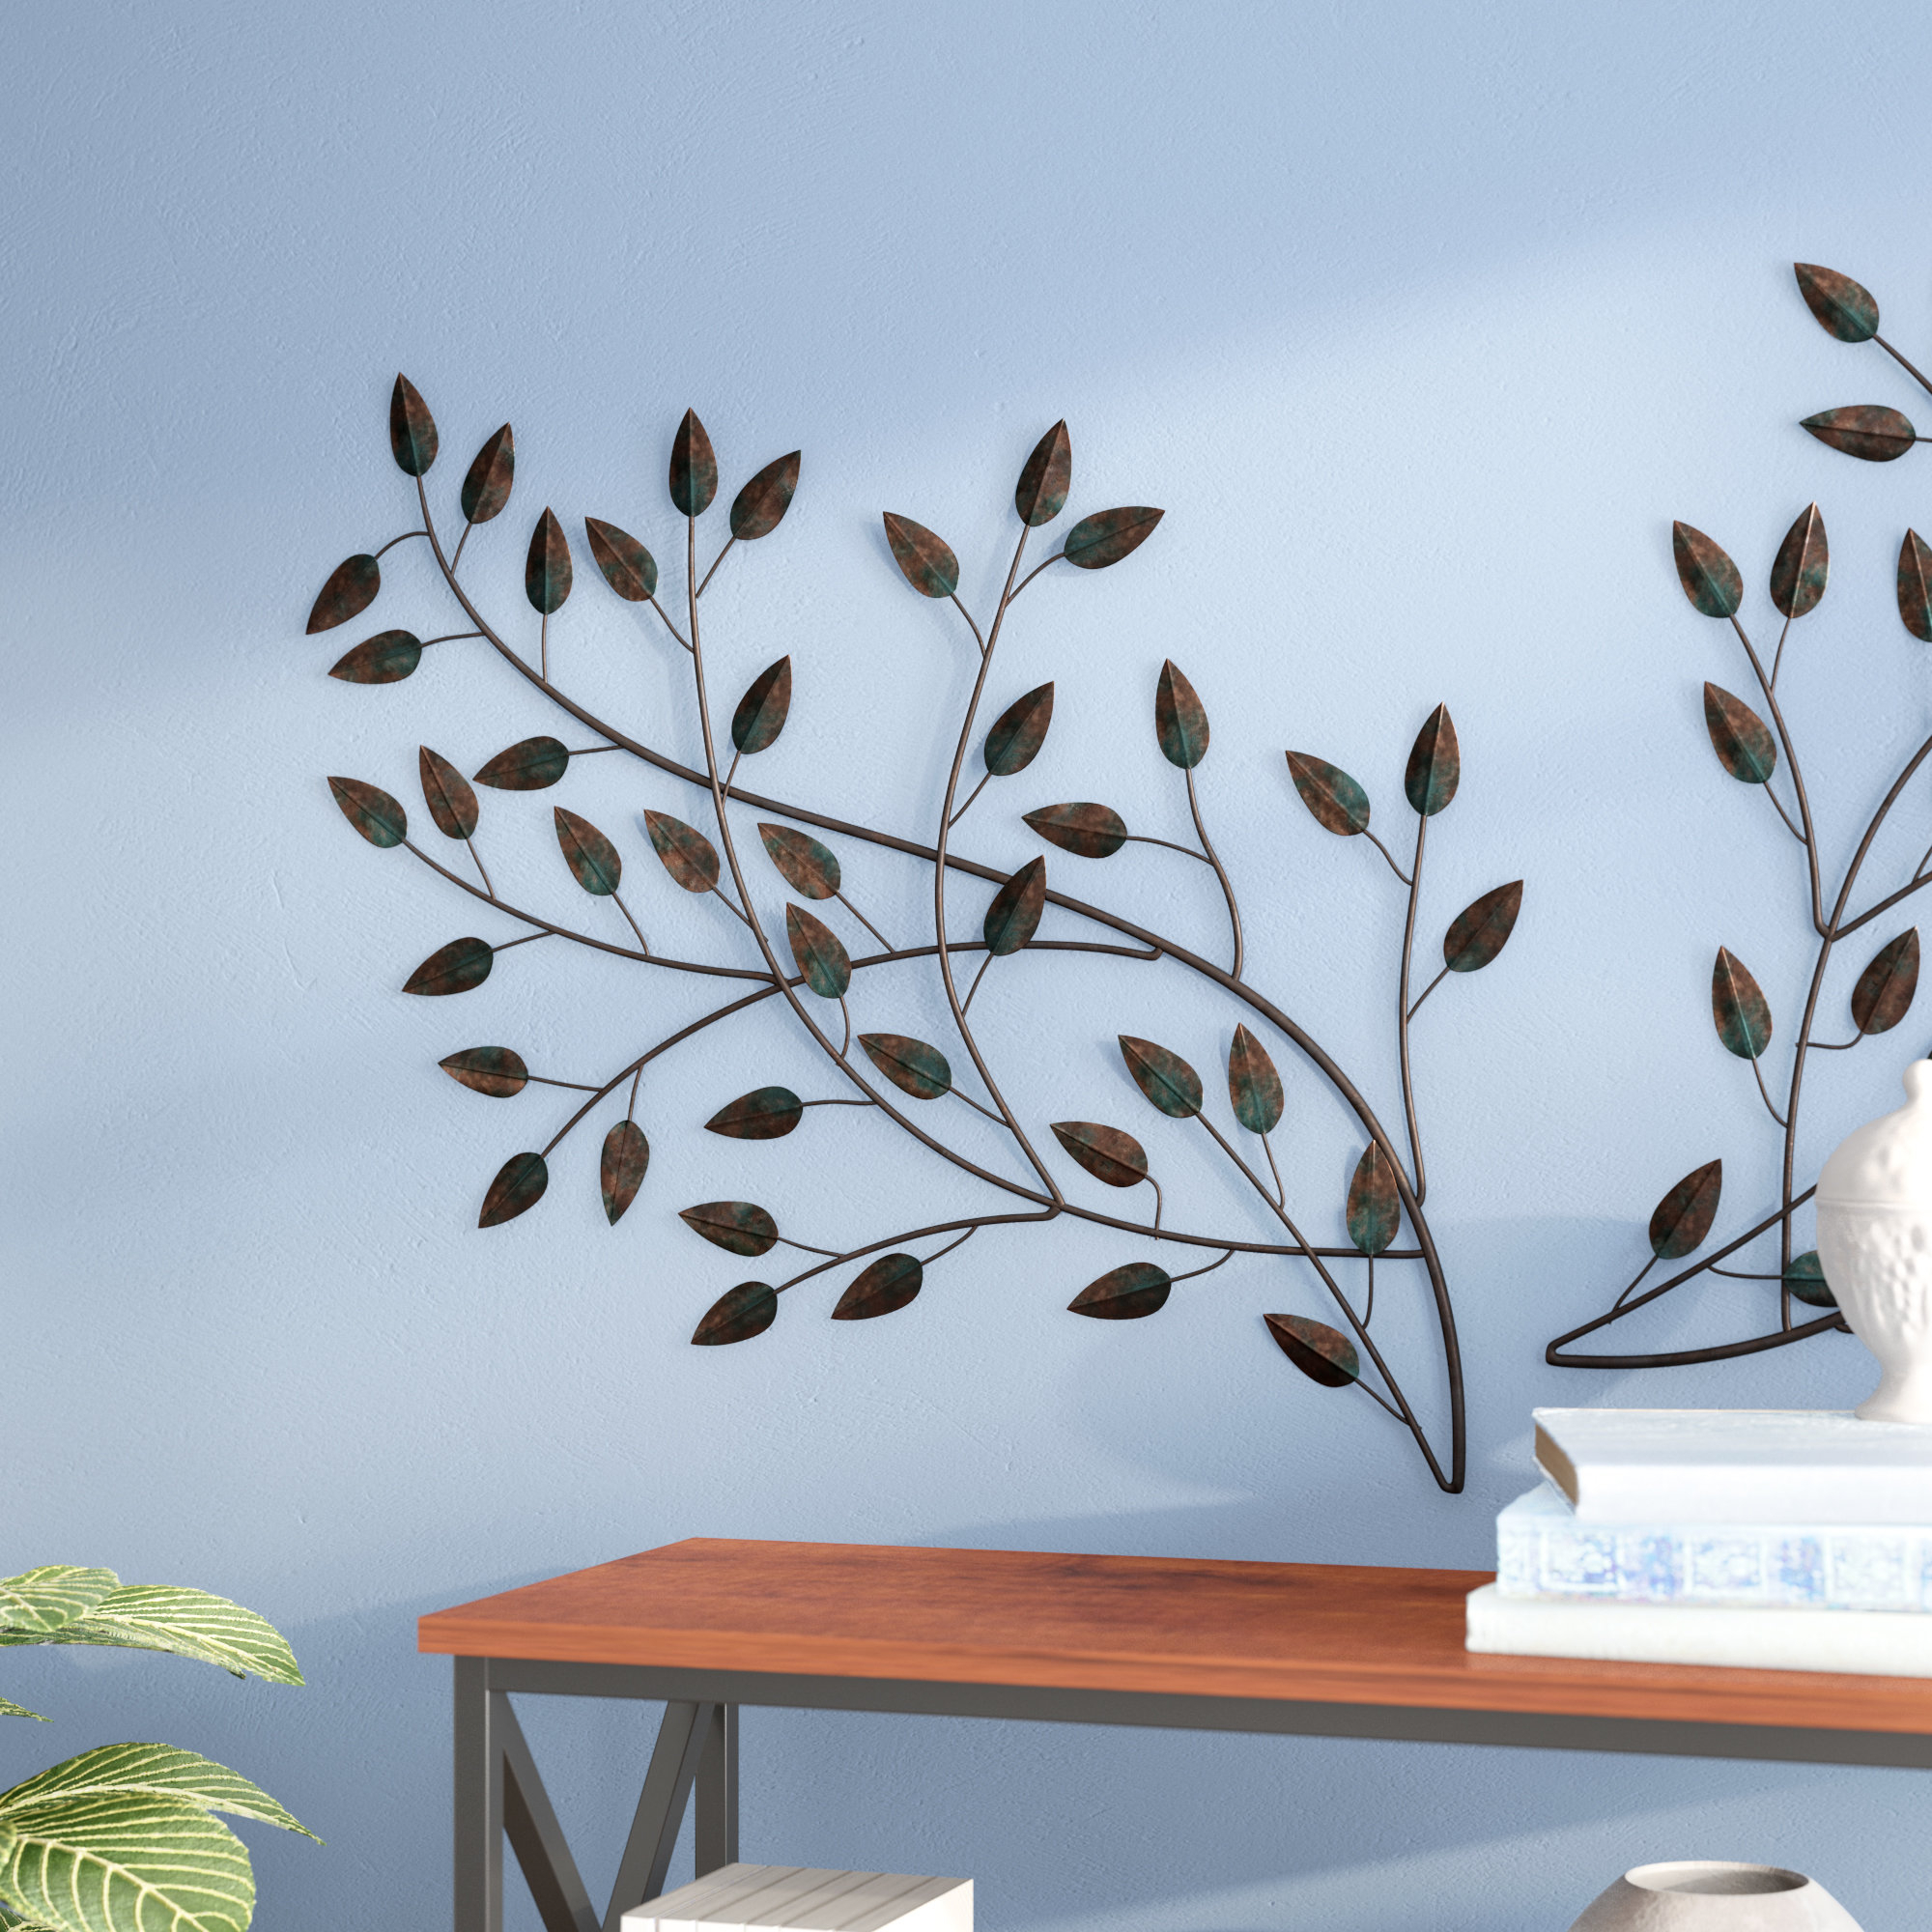 Newest Contemporary Iron Leaves Wall Decor By Winston Porter With Regard To Winston Porter Blowing Leaves Wall Décor & Reviews (Gallery 1 of 20)